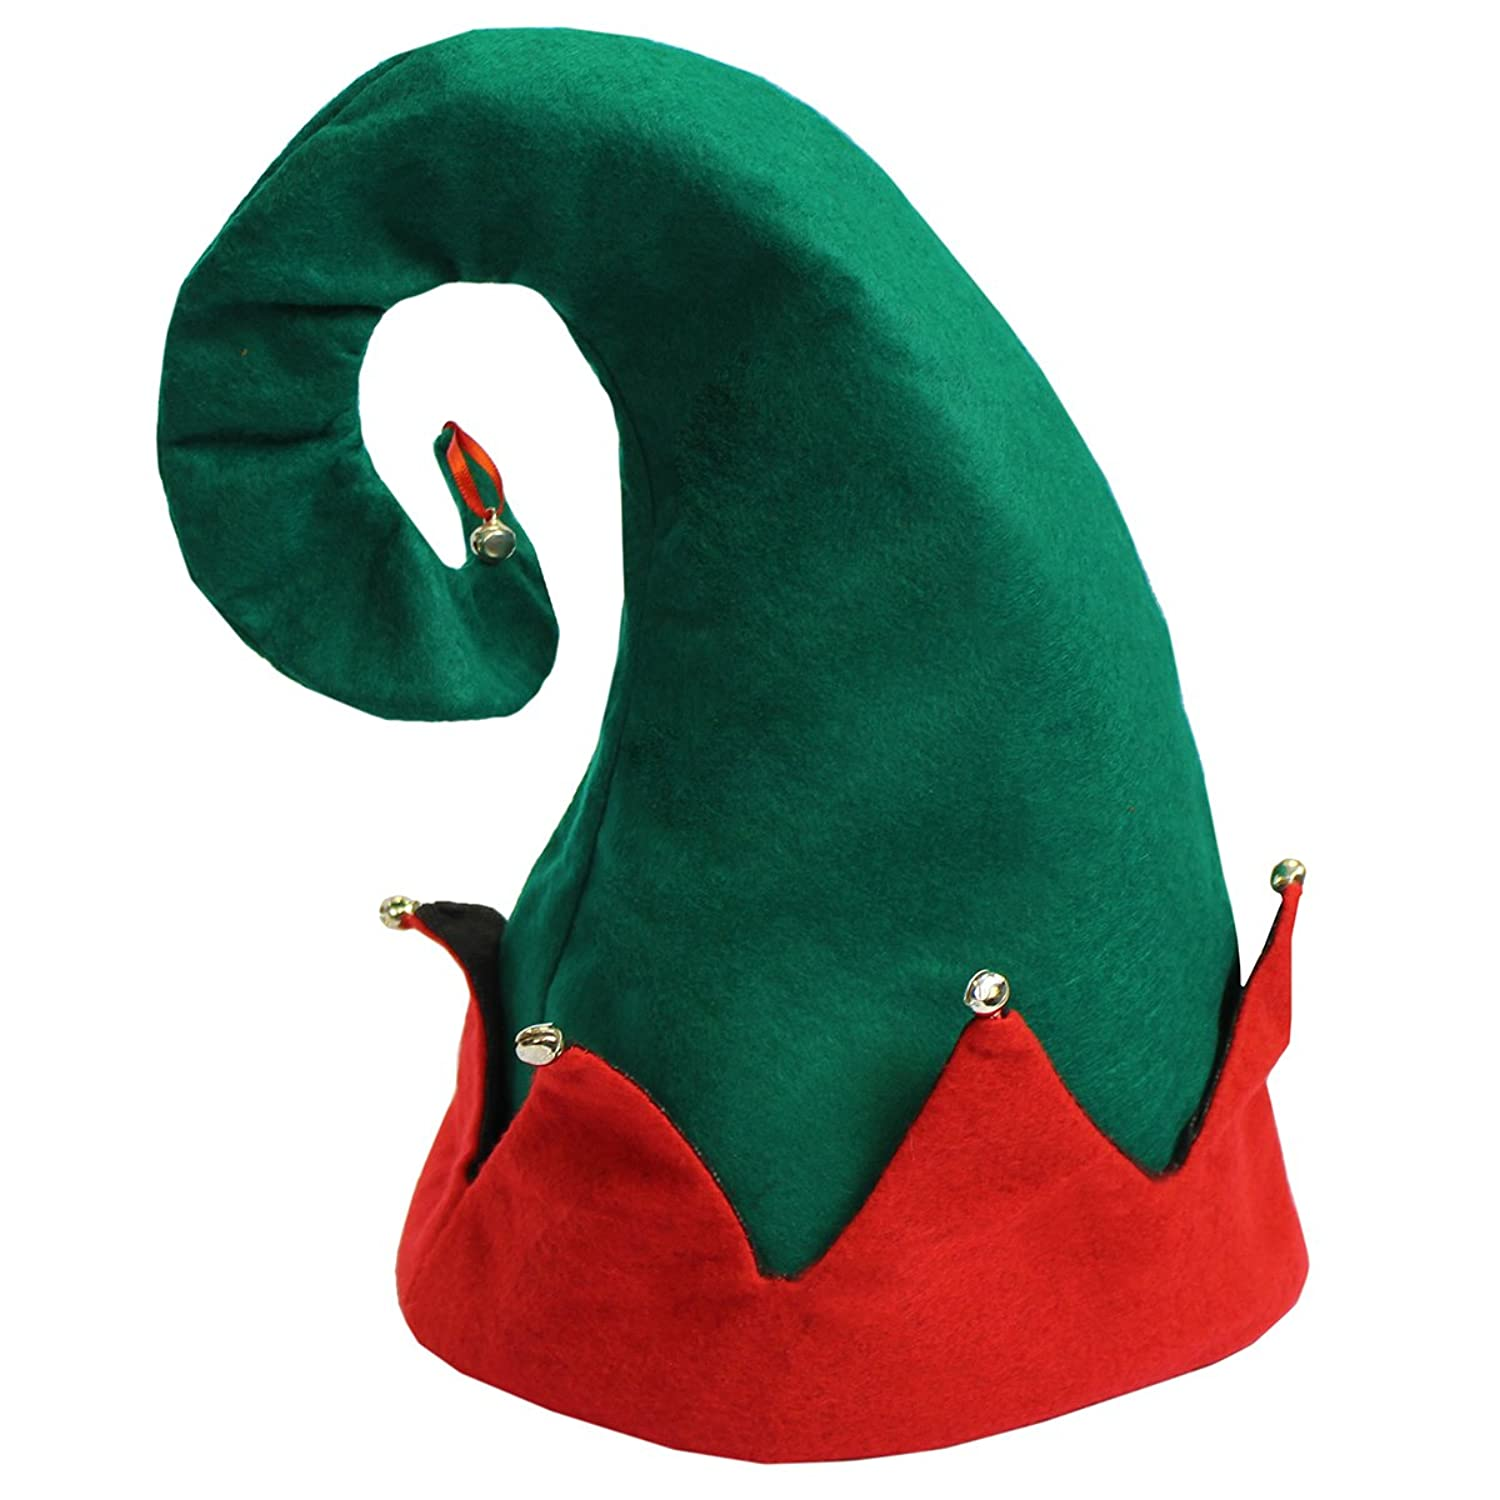 4ef218e577726 It is festive red and green felt elf hat. It is embellished with small  jingle bells. Ideal for holiday parties